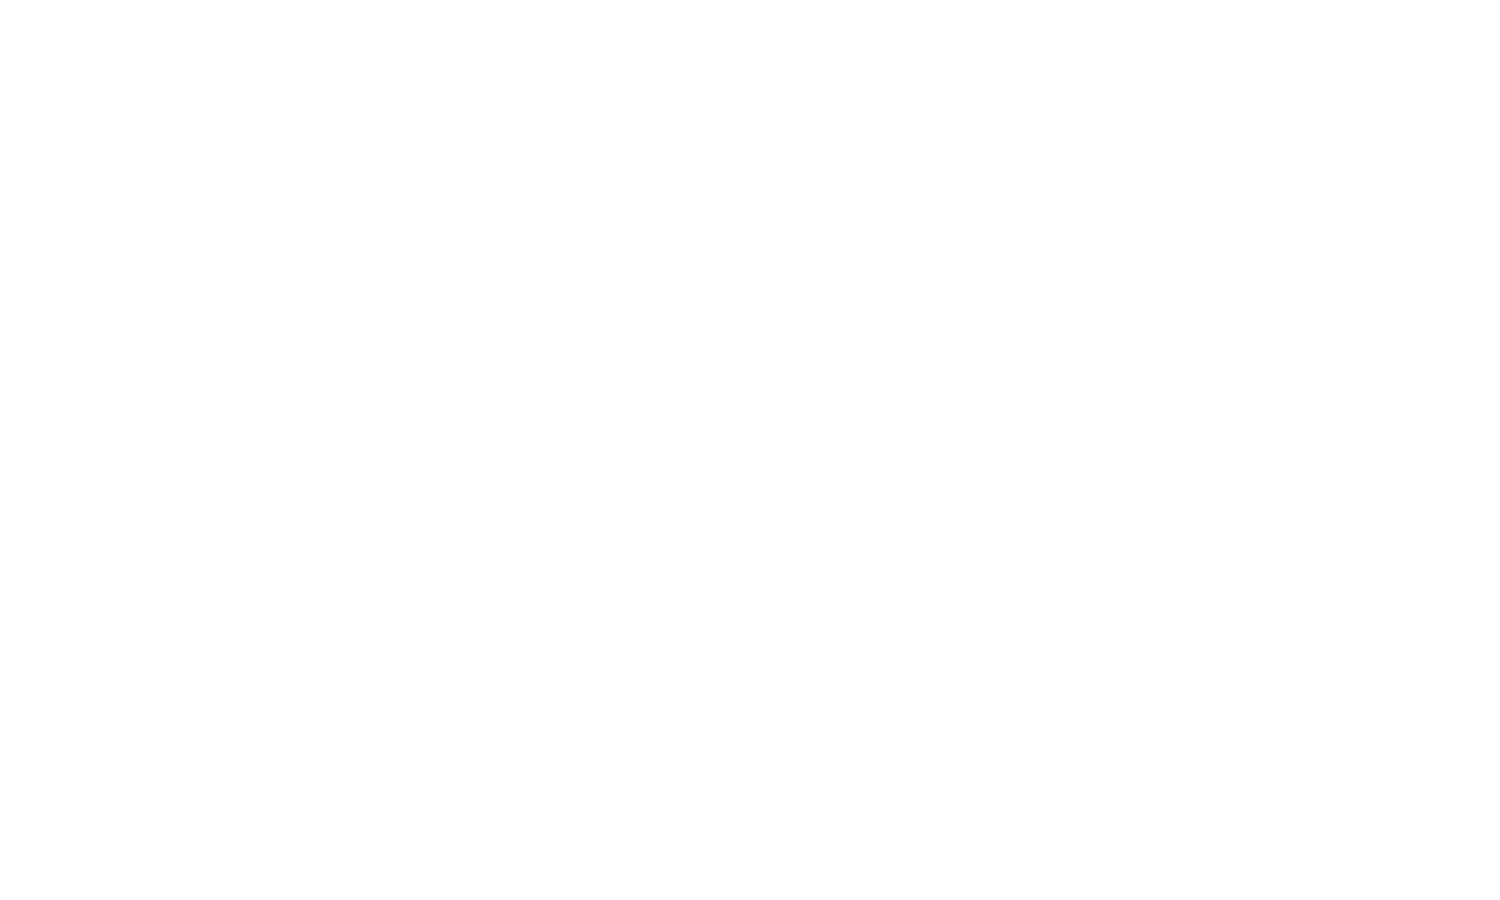 Leigh Nicholas Consulting